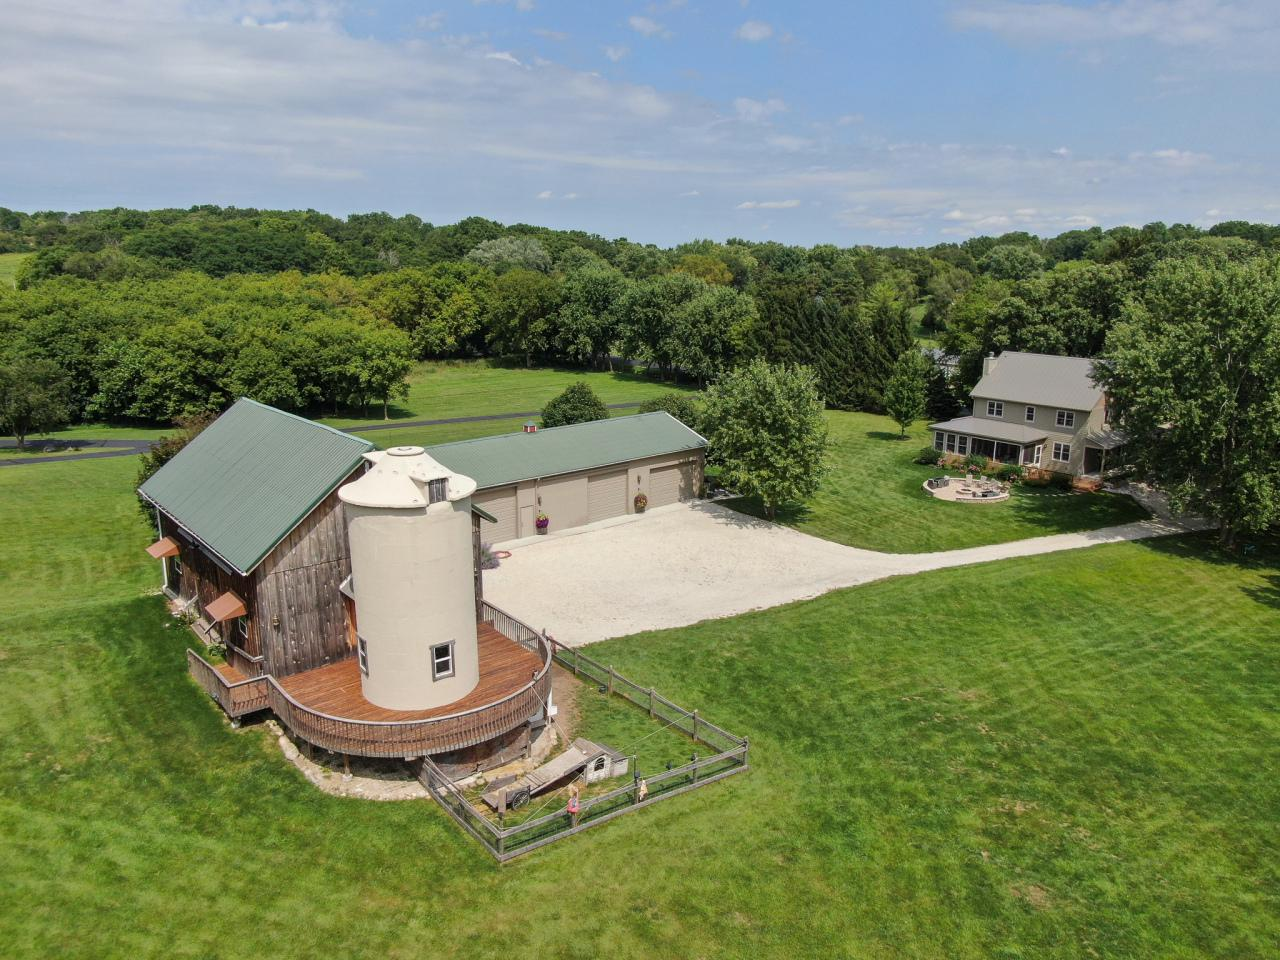 Ever dream of owning a magical piece of paradise? You found it! This unique property offers anything the imagination holds with a newly built farmhouse, 10 acres, 2 ponds, a pole building and a wood and fieldstone Barn. The Barn could be a wedding destination in itself with 2 floors of entertaining space, a silo bar, a 1/2 Bath and an attached area for your animals to live. Sip a glass of wine off your barn's circular refurbished deck overlooking green pastures. Set amongst 100 year oaks, maples, and apple trees, this rustic yet elegant home checks every box with 4 bedrooms, 3 baths, an open concept floorplan and a finished LLl. A main floor BR en-suite is can be used as a guest room while the MBR upstairs offers cathedral ceilings with barn wood details and a spa-like tiled bathroom.